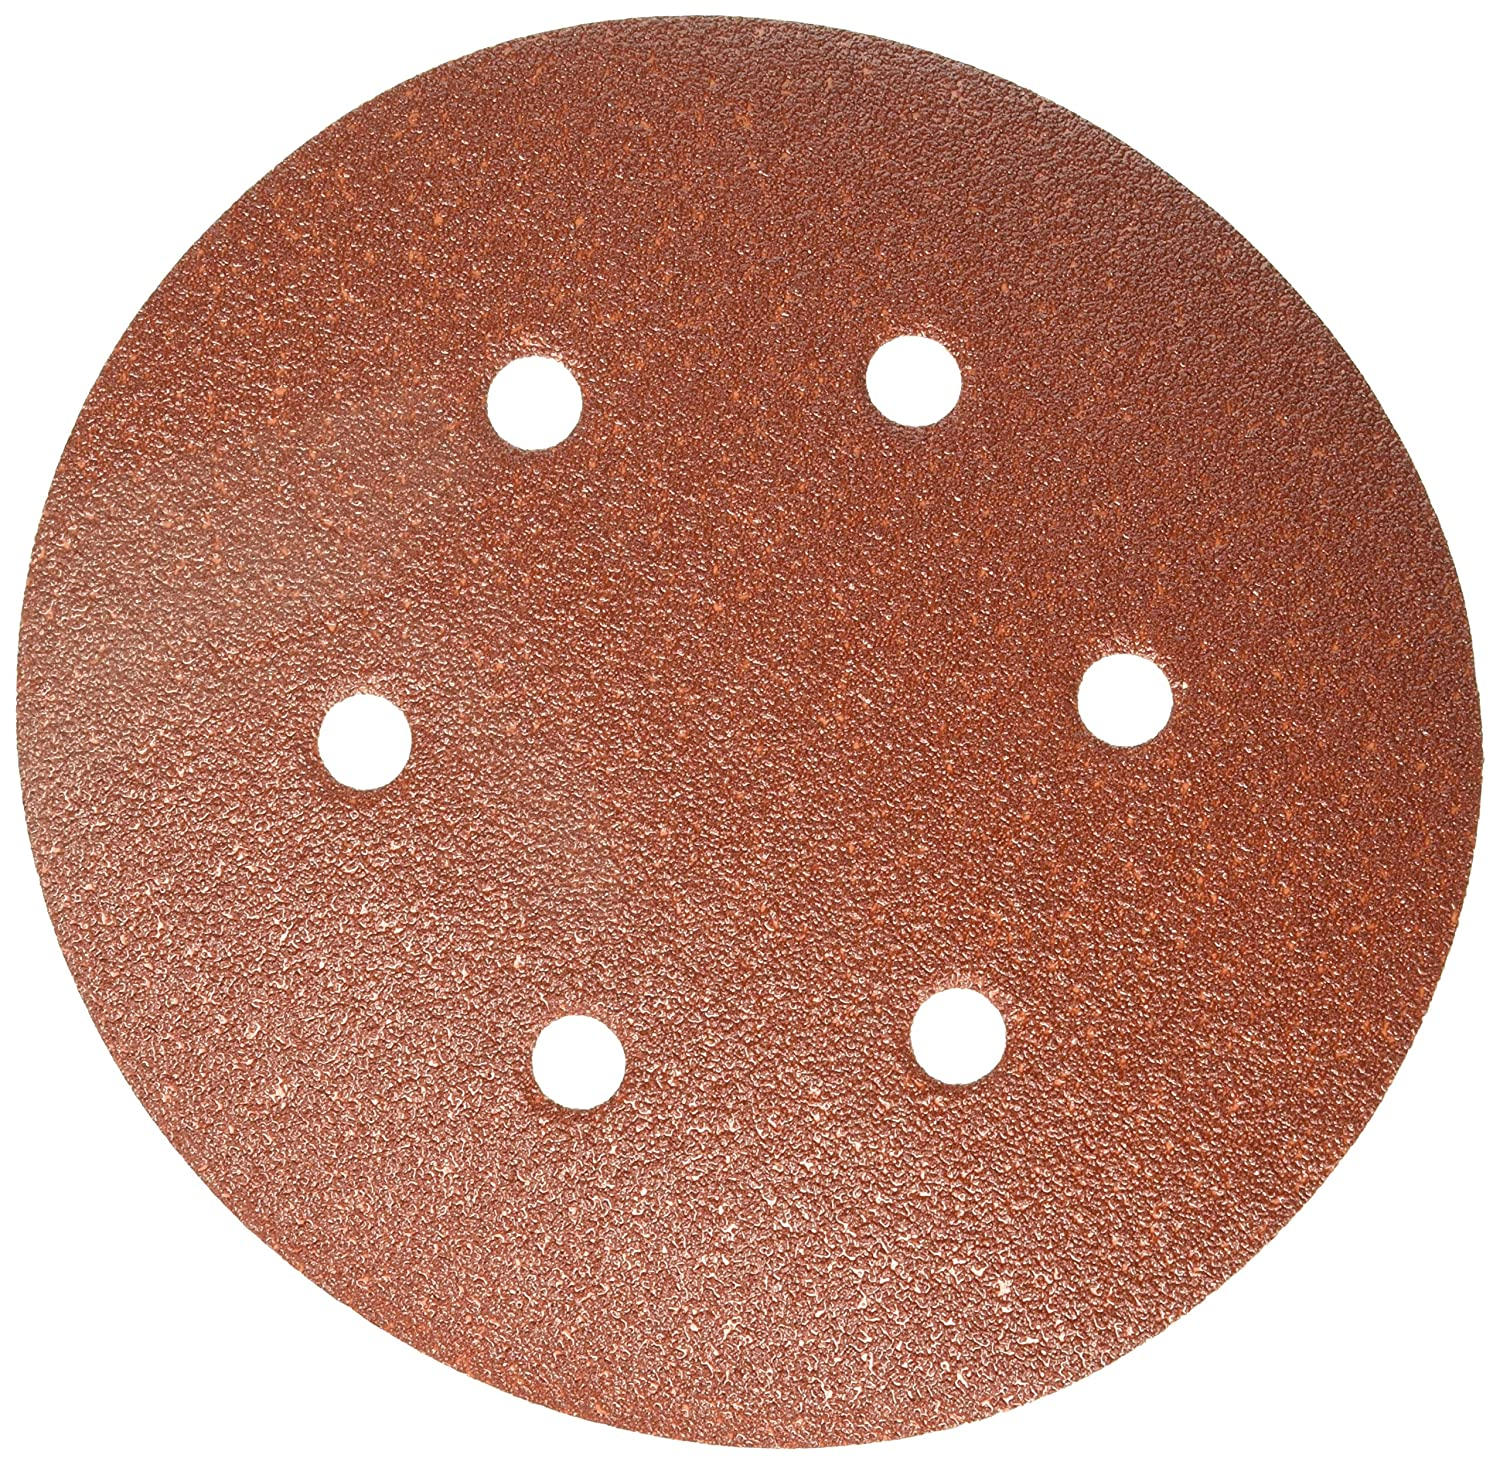 PORTER-CABLE 726600825 6-Inch 6 Hole 80G Disc (25-Pack)